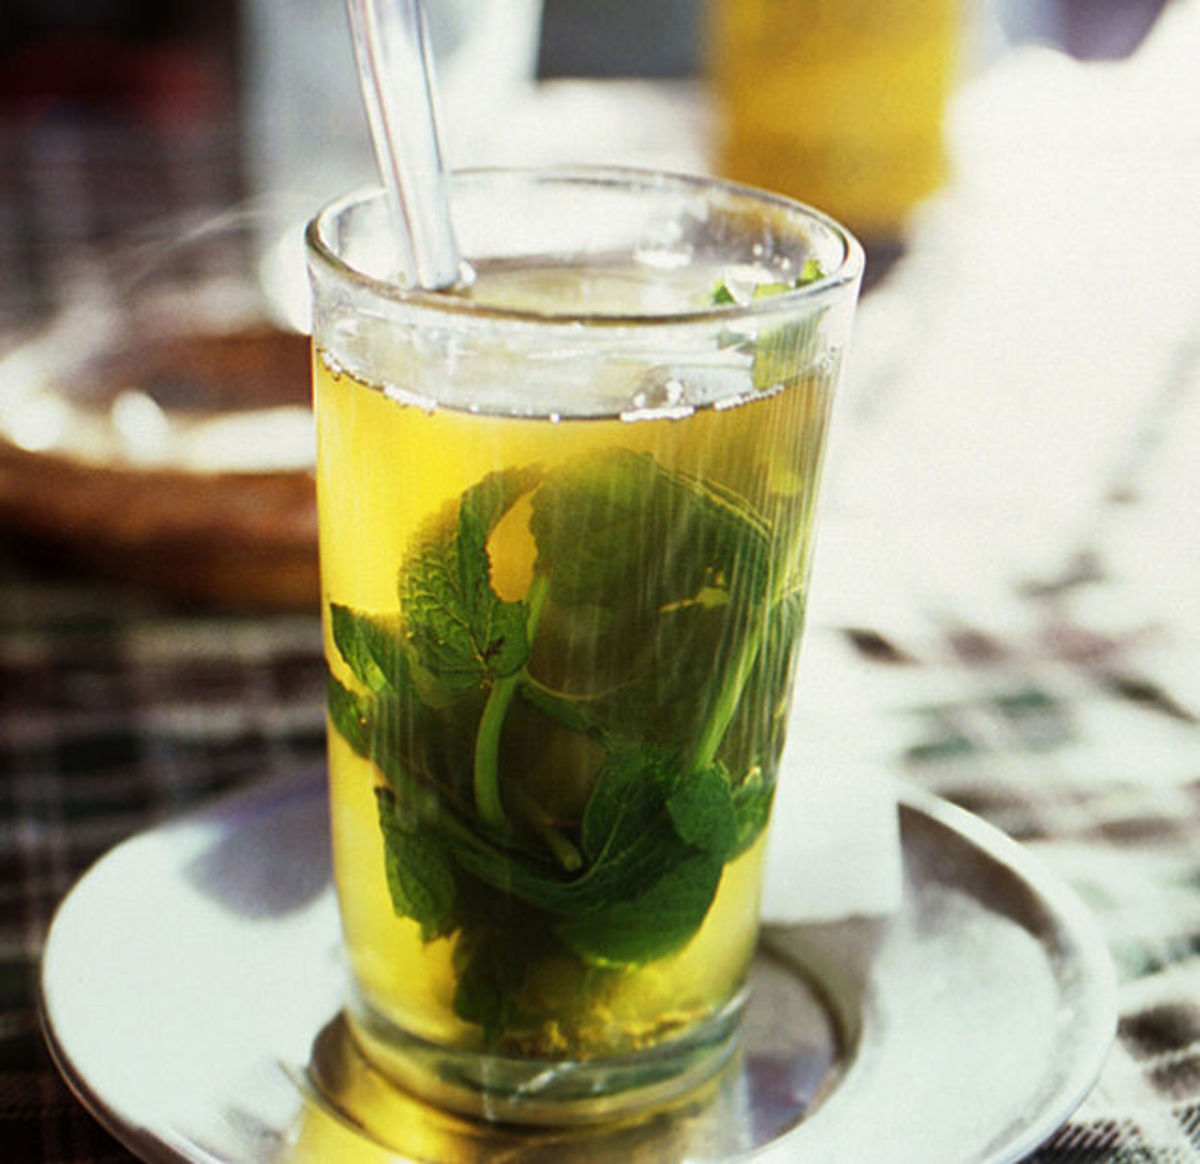 The delight of mint tea sucked through a sugar cube... and at every meal!